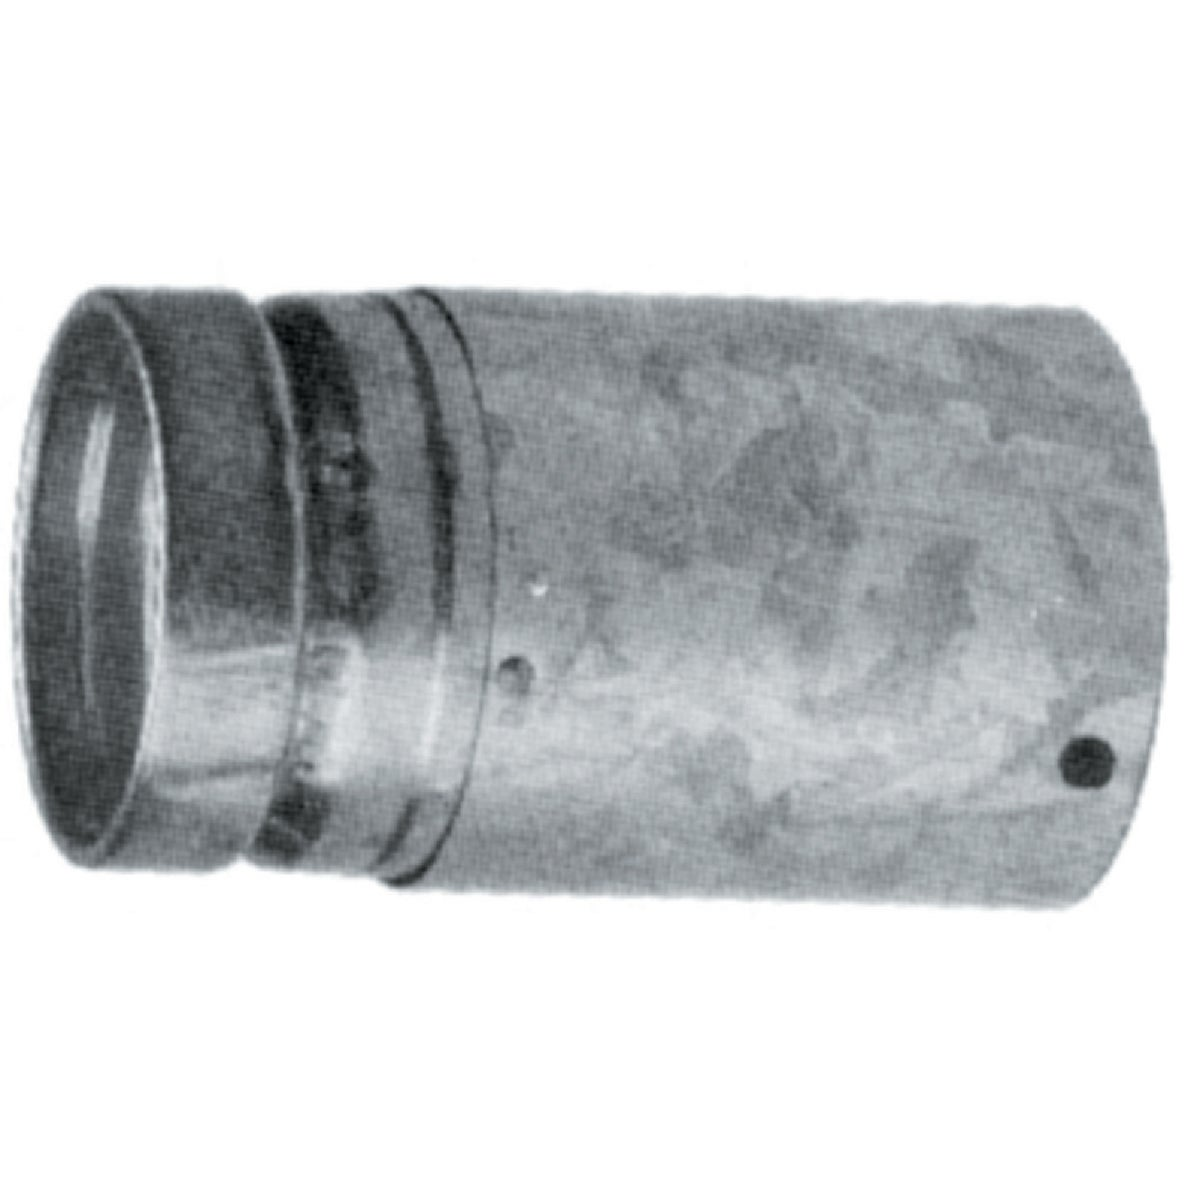 "5"" ADJ GAS VENT PIPE - 5RV-EZAJ12 by Selkirk Corporation"